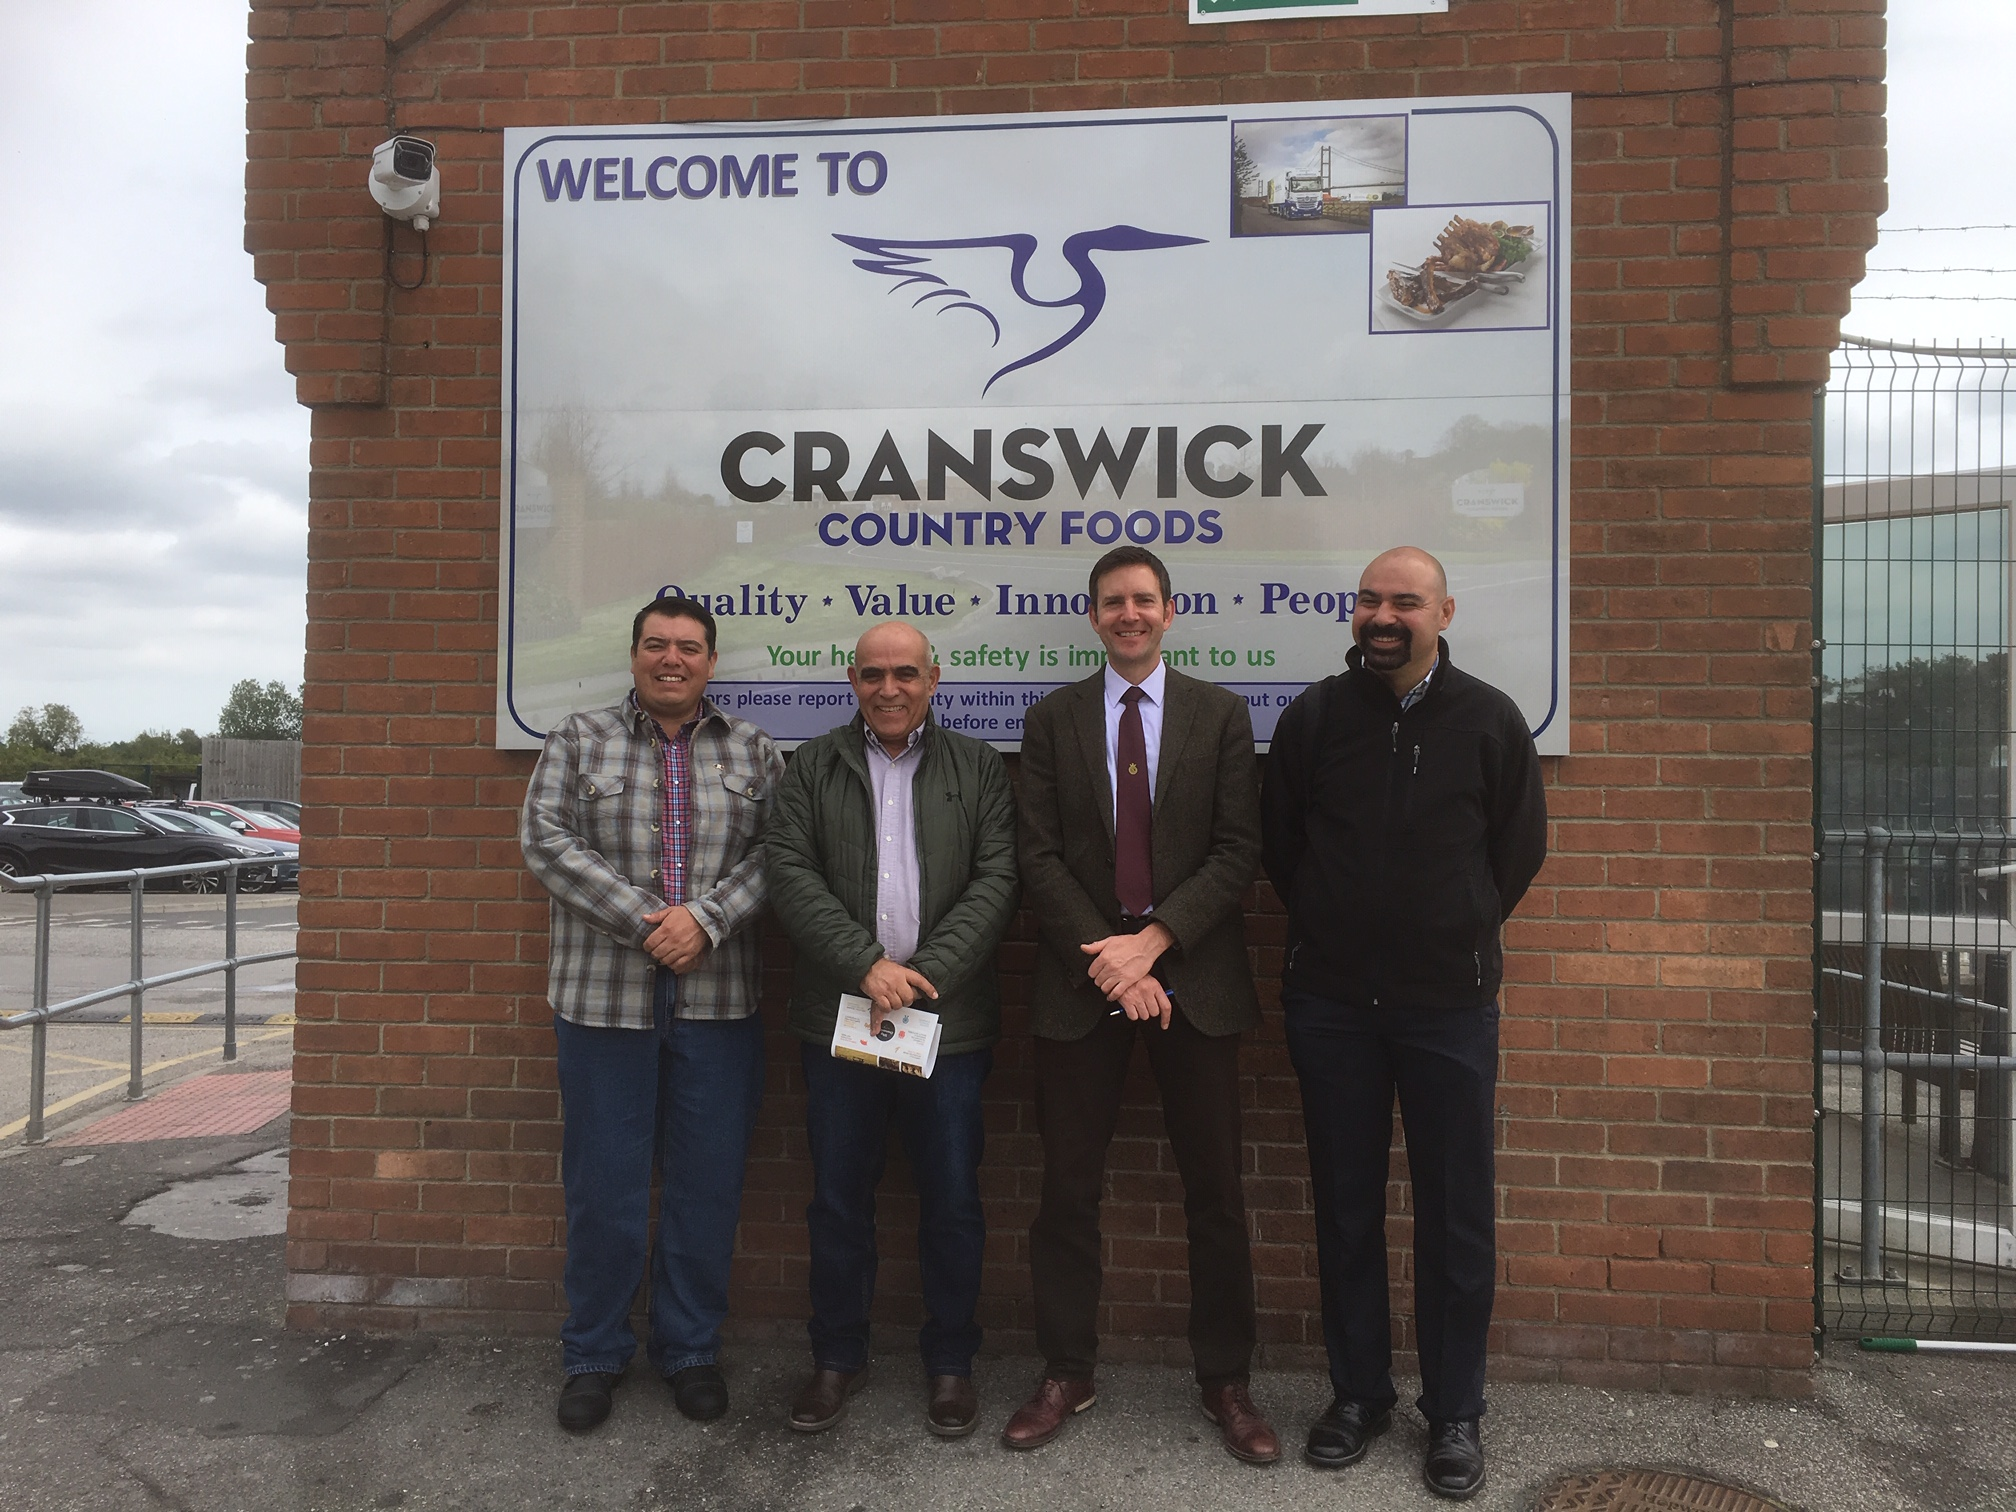 Visit to Cranswick Country Foods plc, Preston